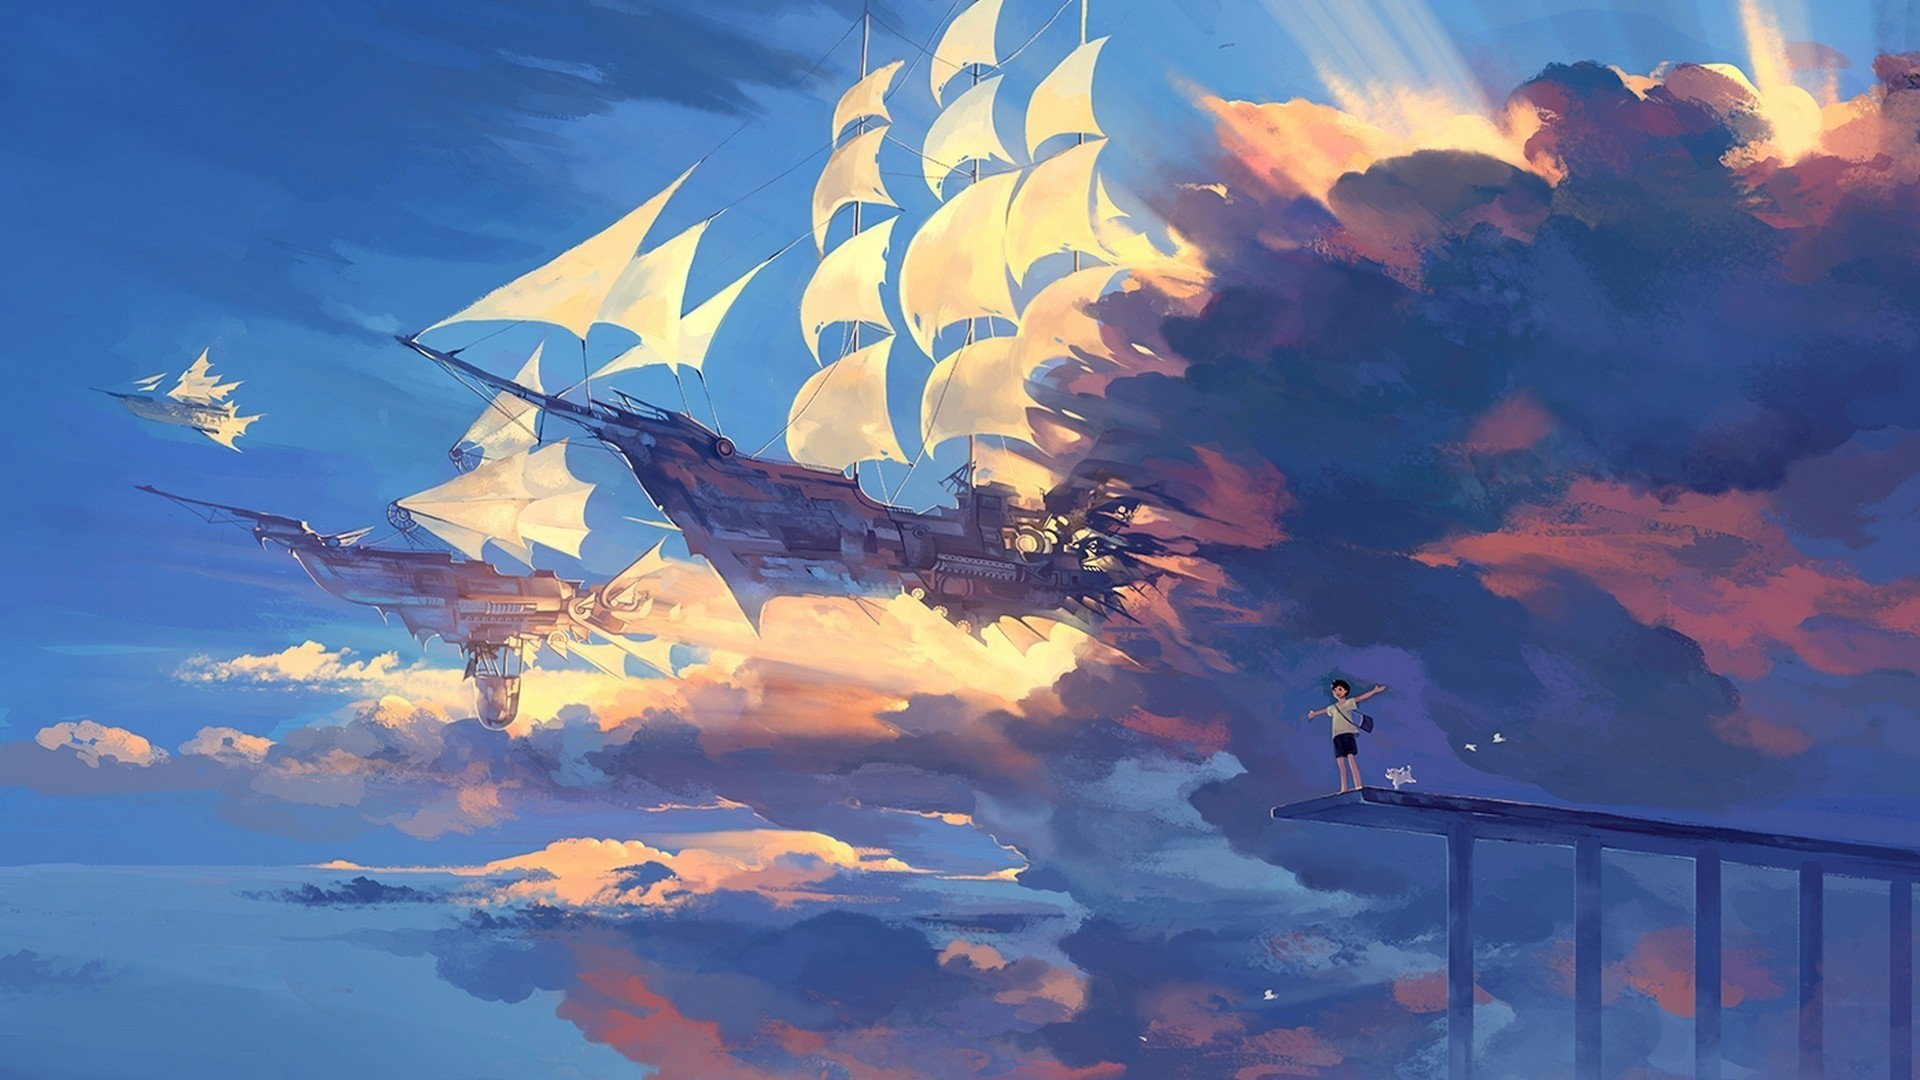 Anime Scenery Wallpaper ·① Download Free Awesome